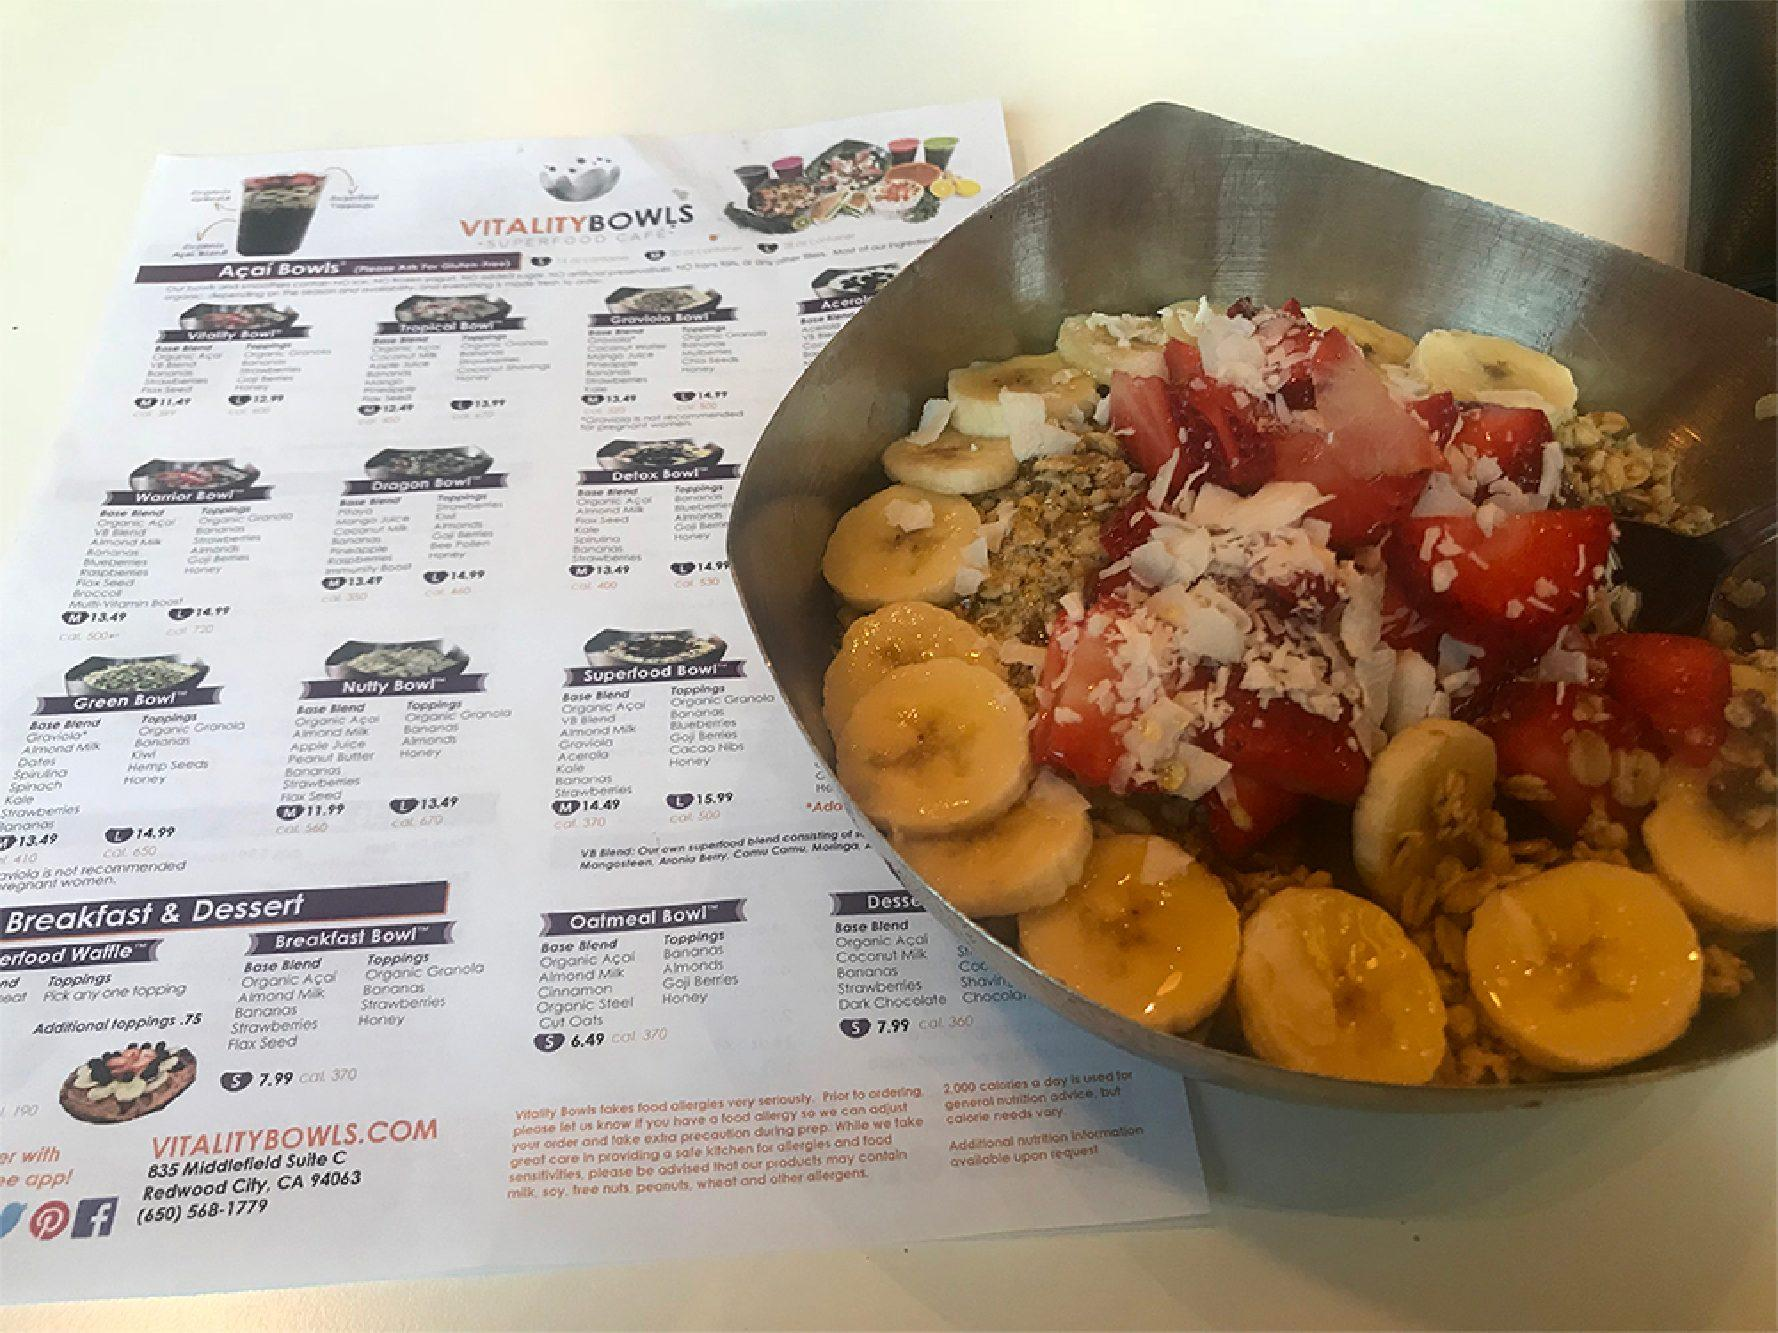 Vitality Bowls offers many choices for an açaí bowl on its menu.